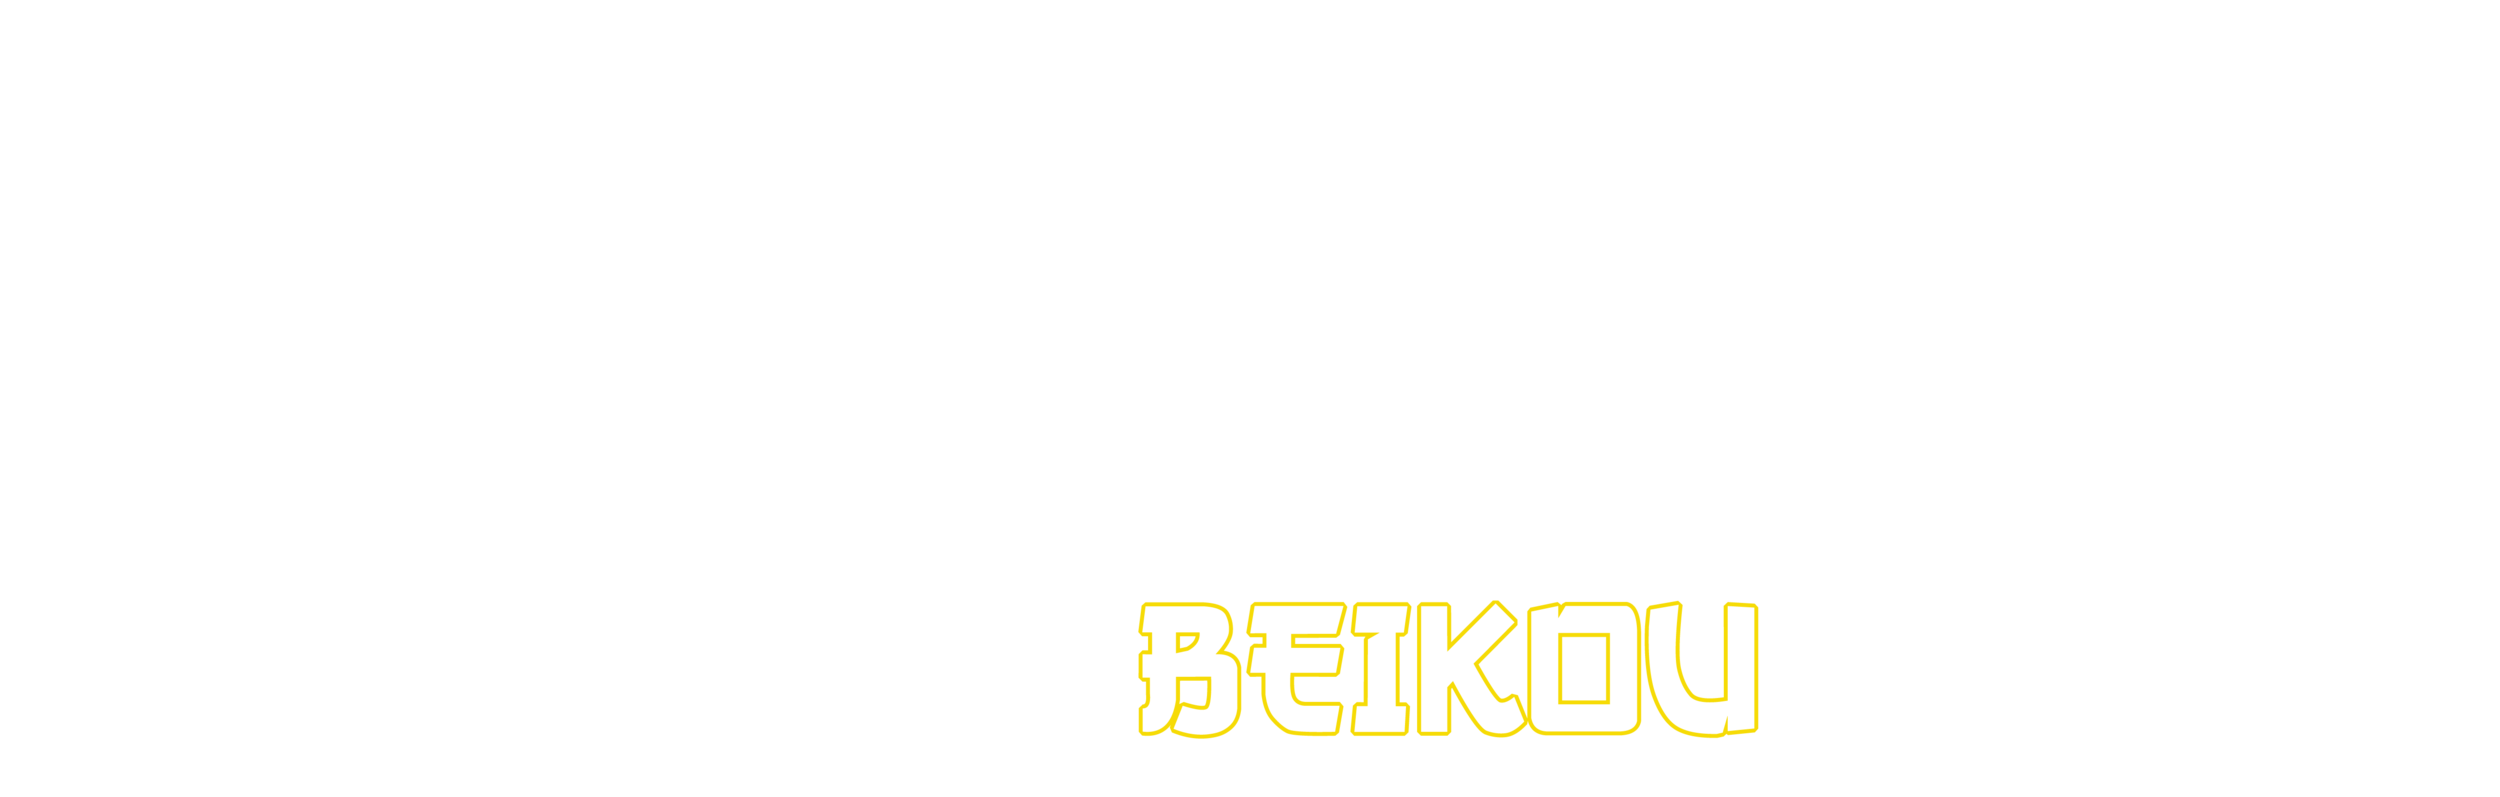 BROut_Yellow.png